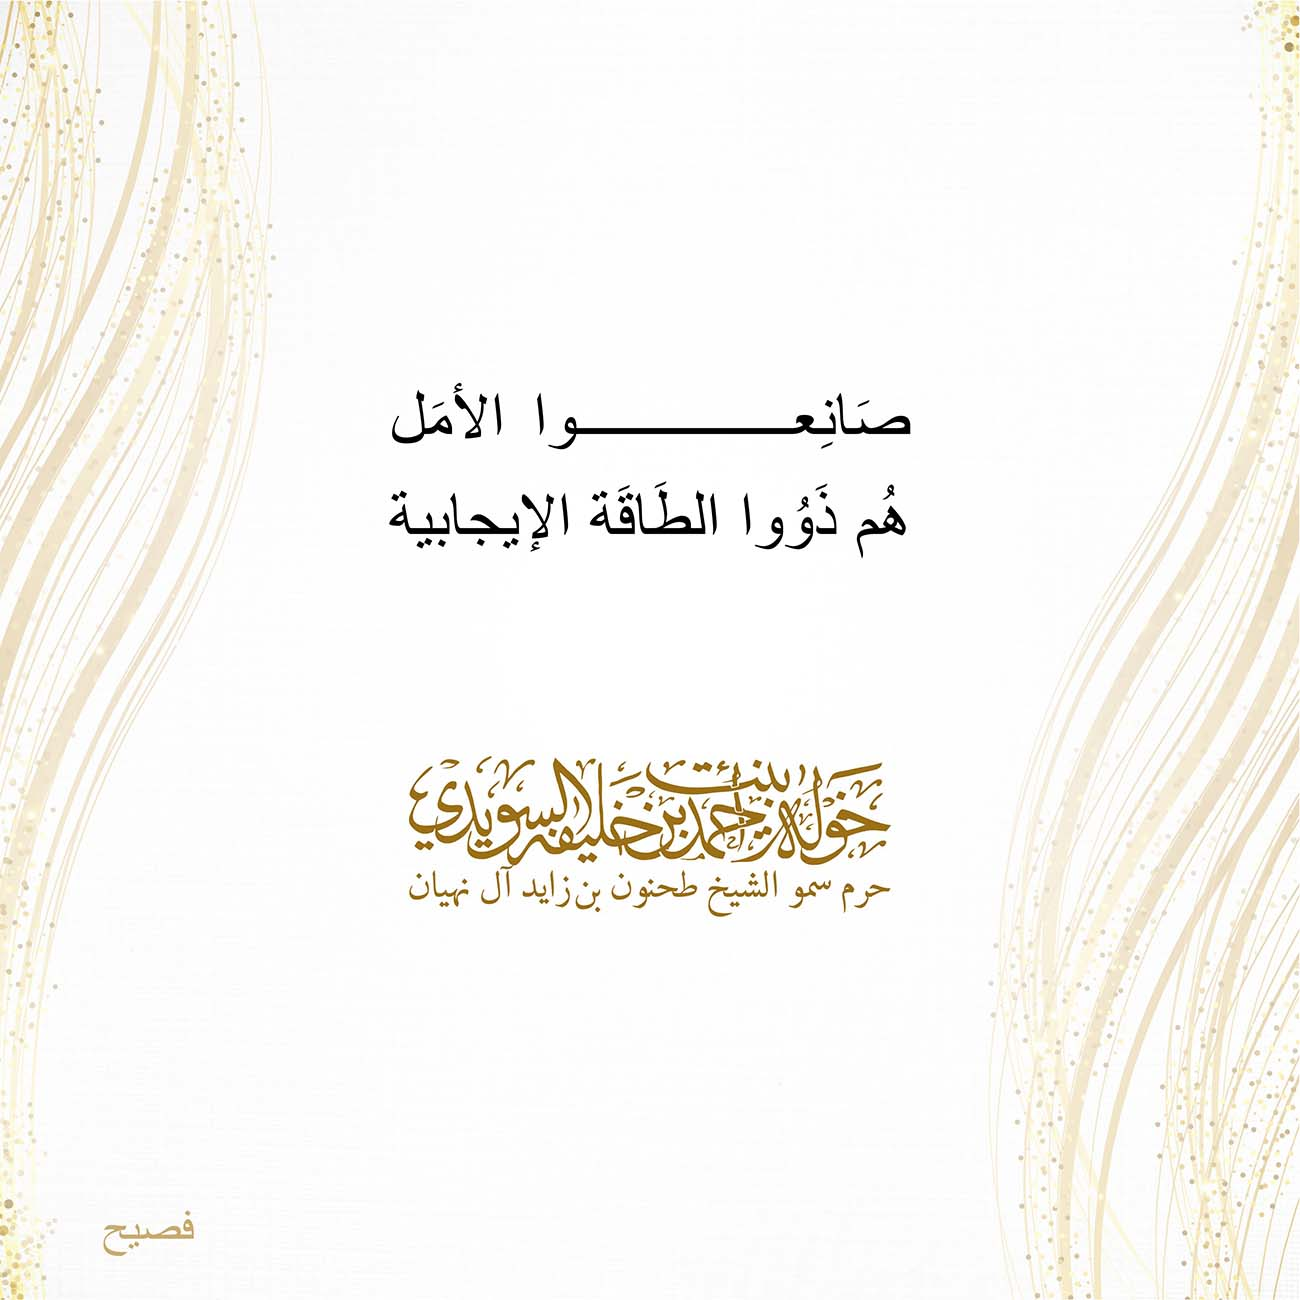 صَانِعوا الأمَل